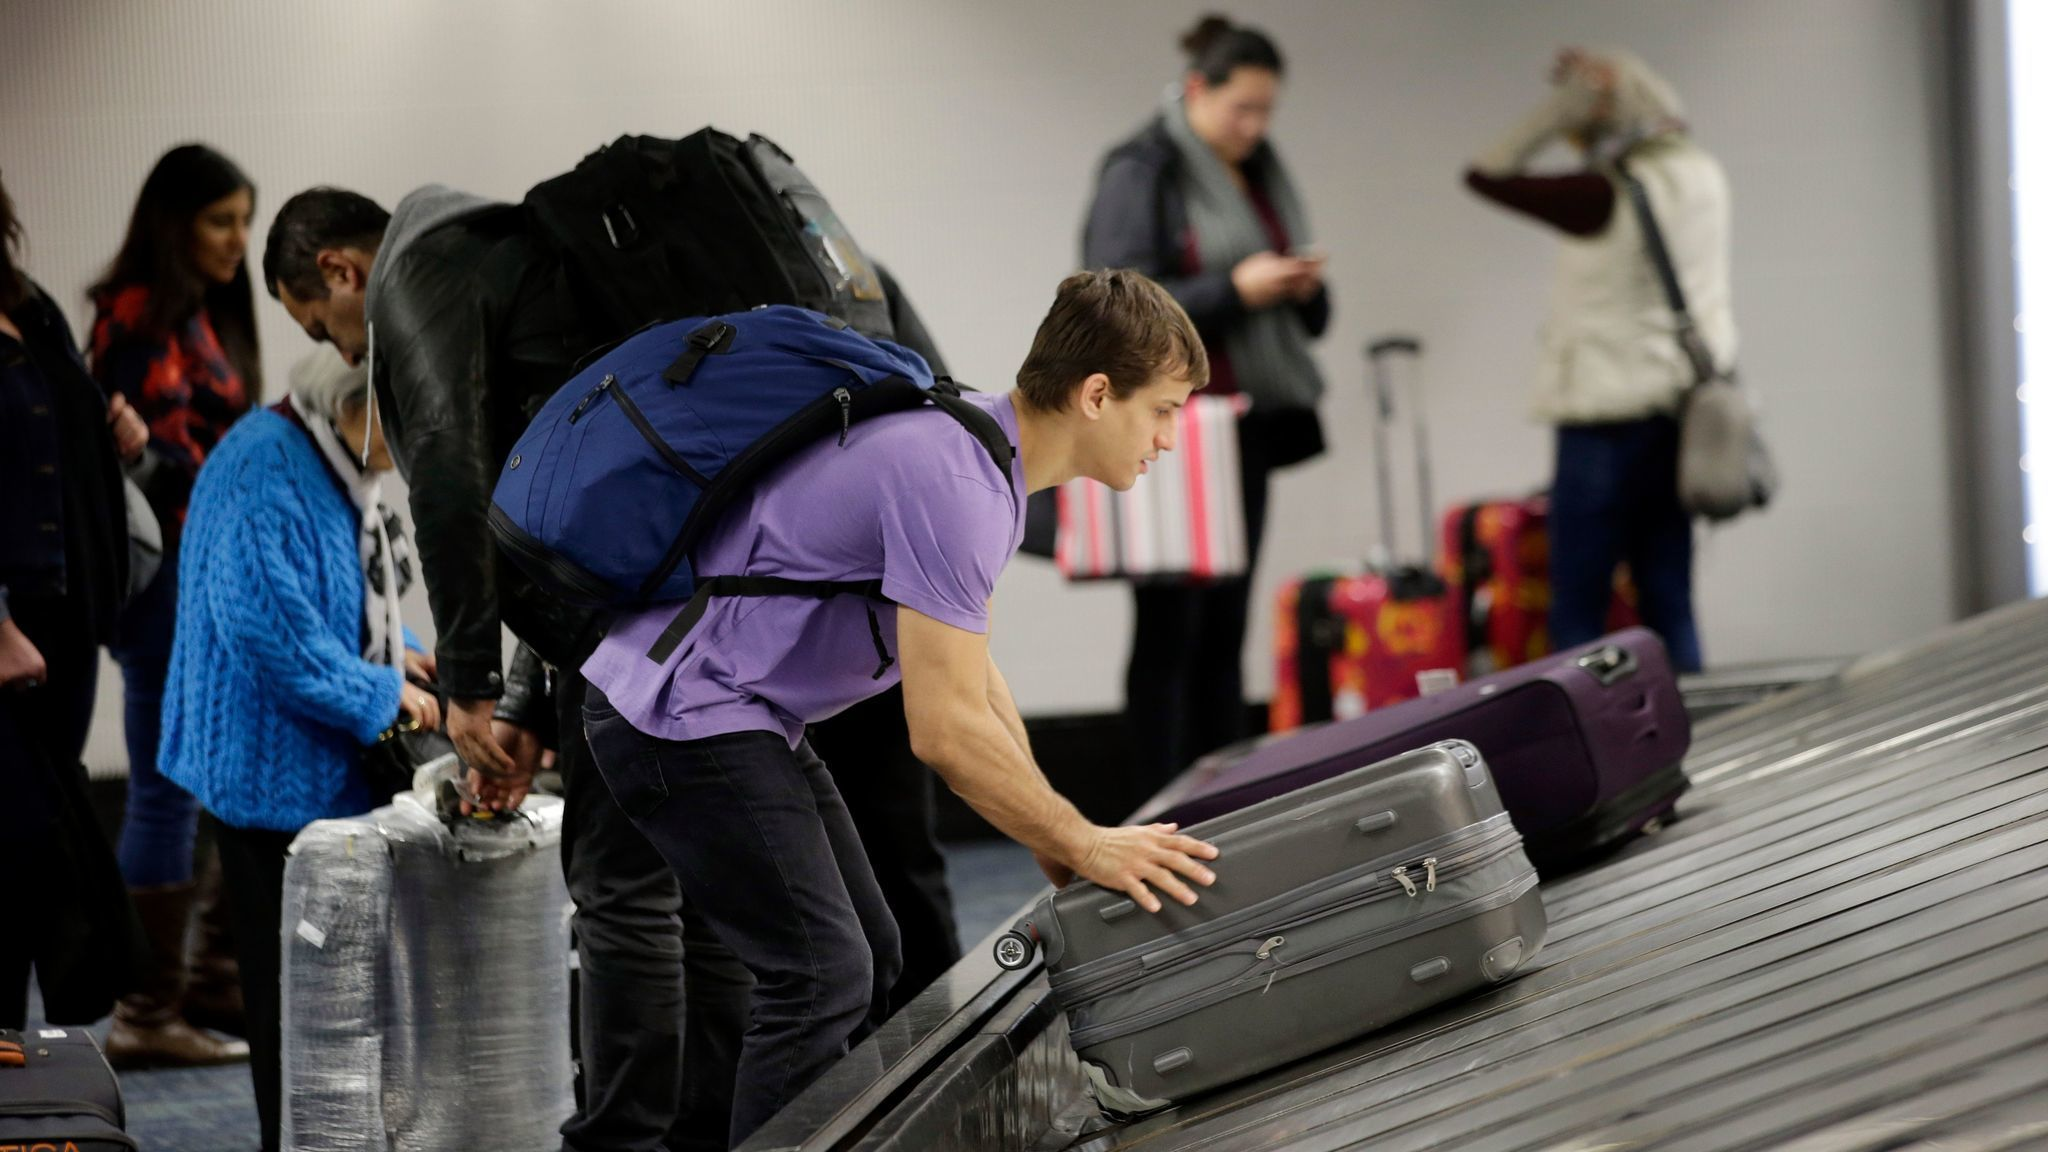 American Airlines Will Alert Passengers When Bags Get Lost